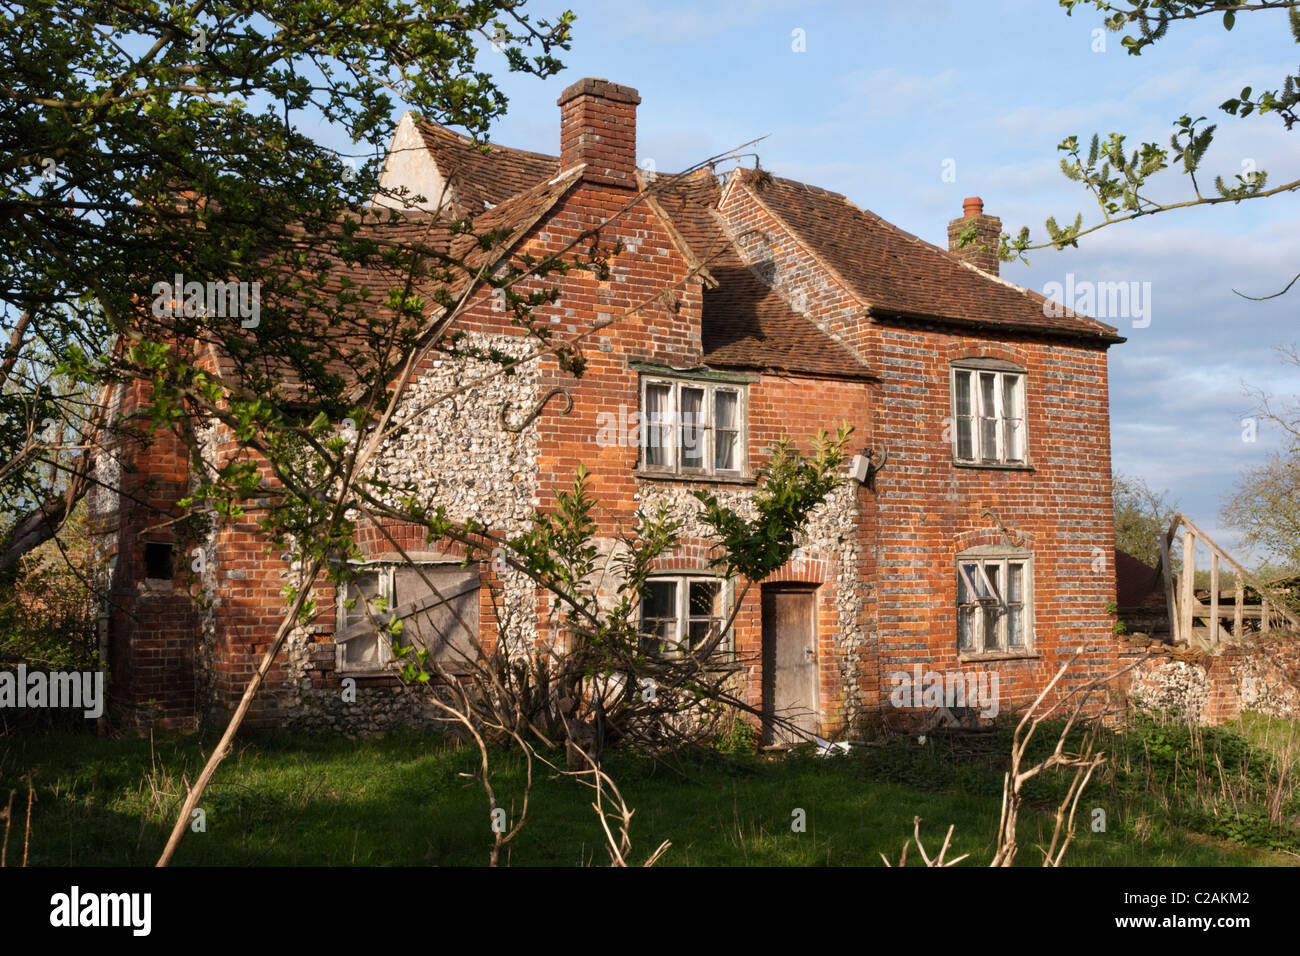 An abandoned  Farmhouse in the rural area of Wheeler End, Buckinghamshire. Stock Photo